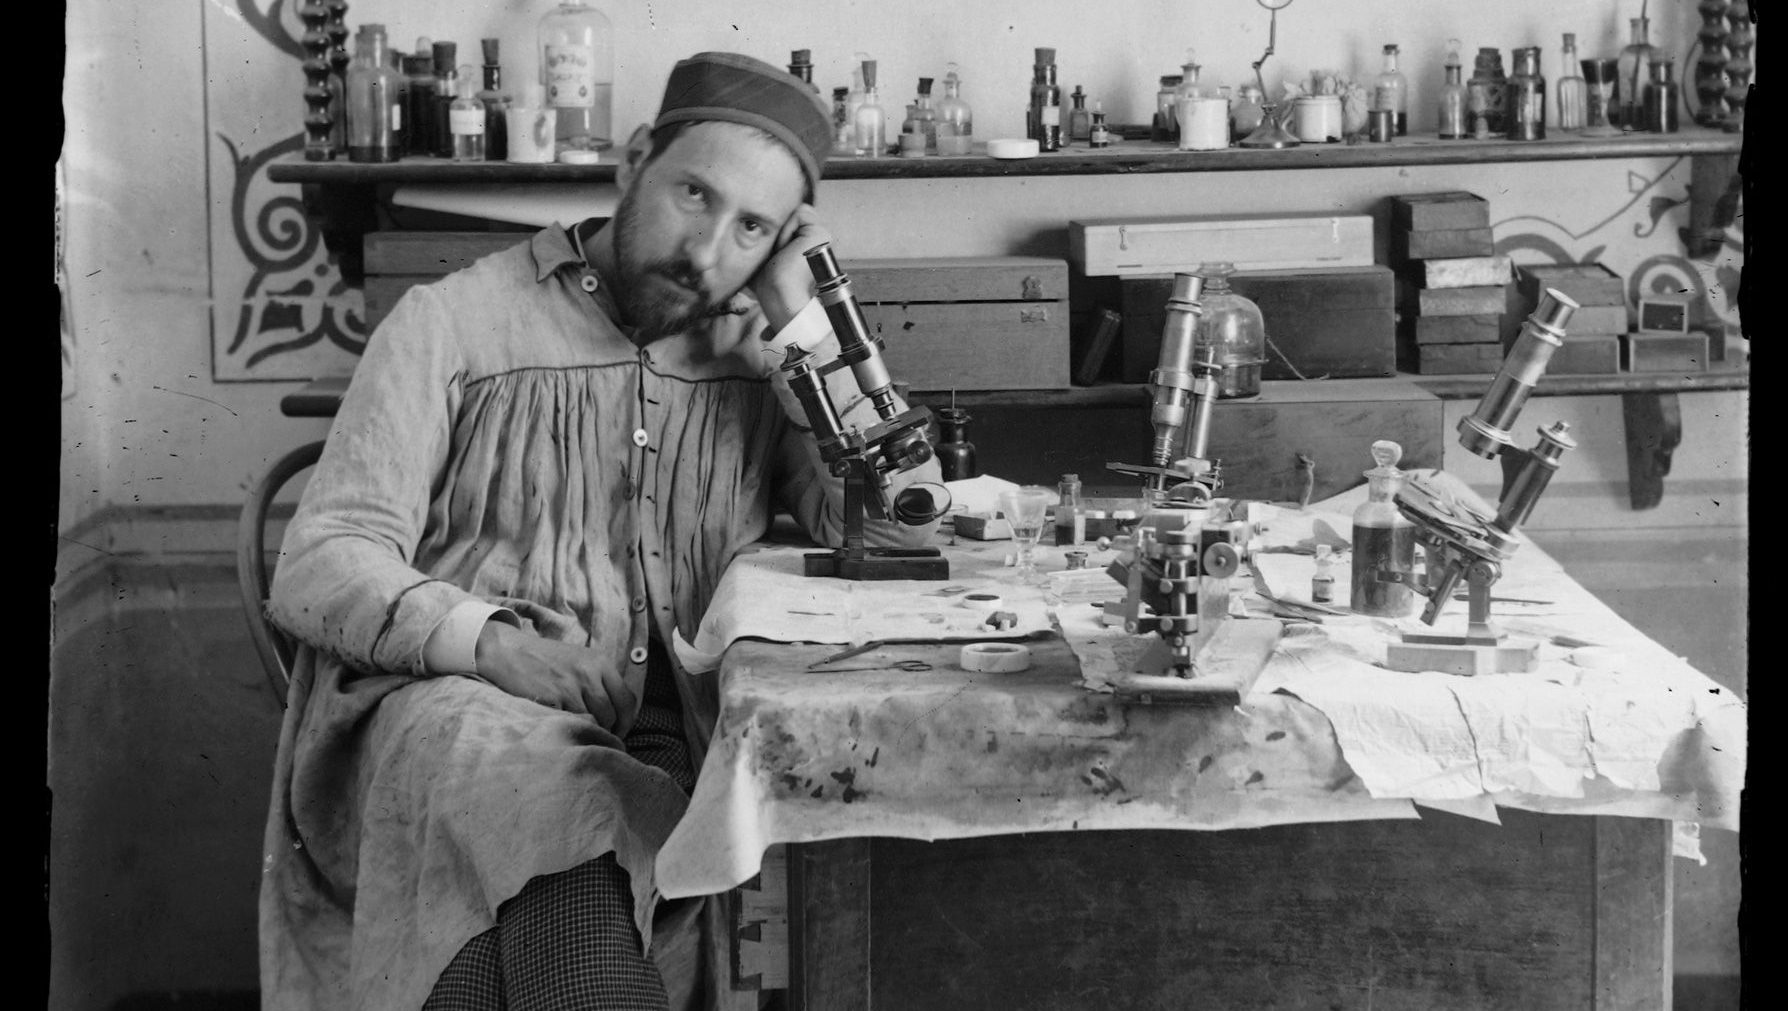 Santiago Ramón y Cajal took this self-portrait in his early thirties, while in his laboratory in Valencia, Spain.